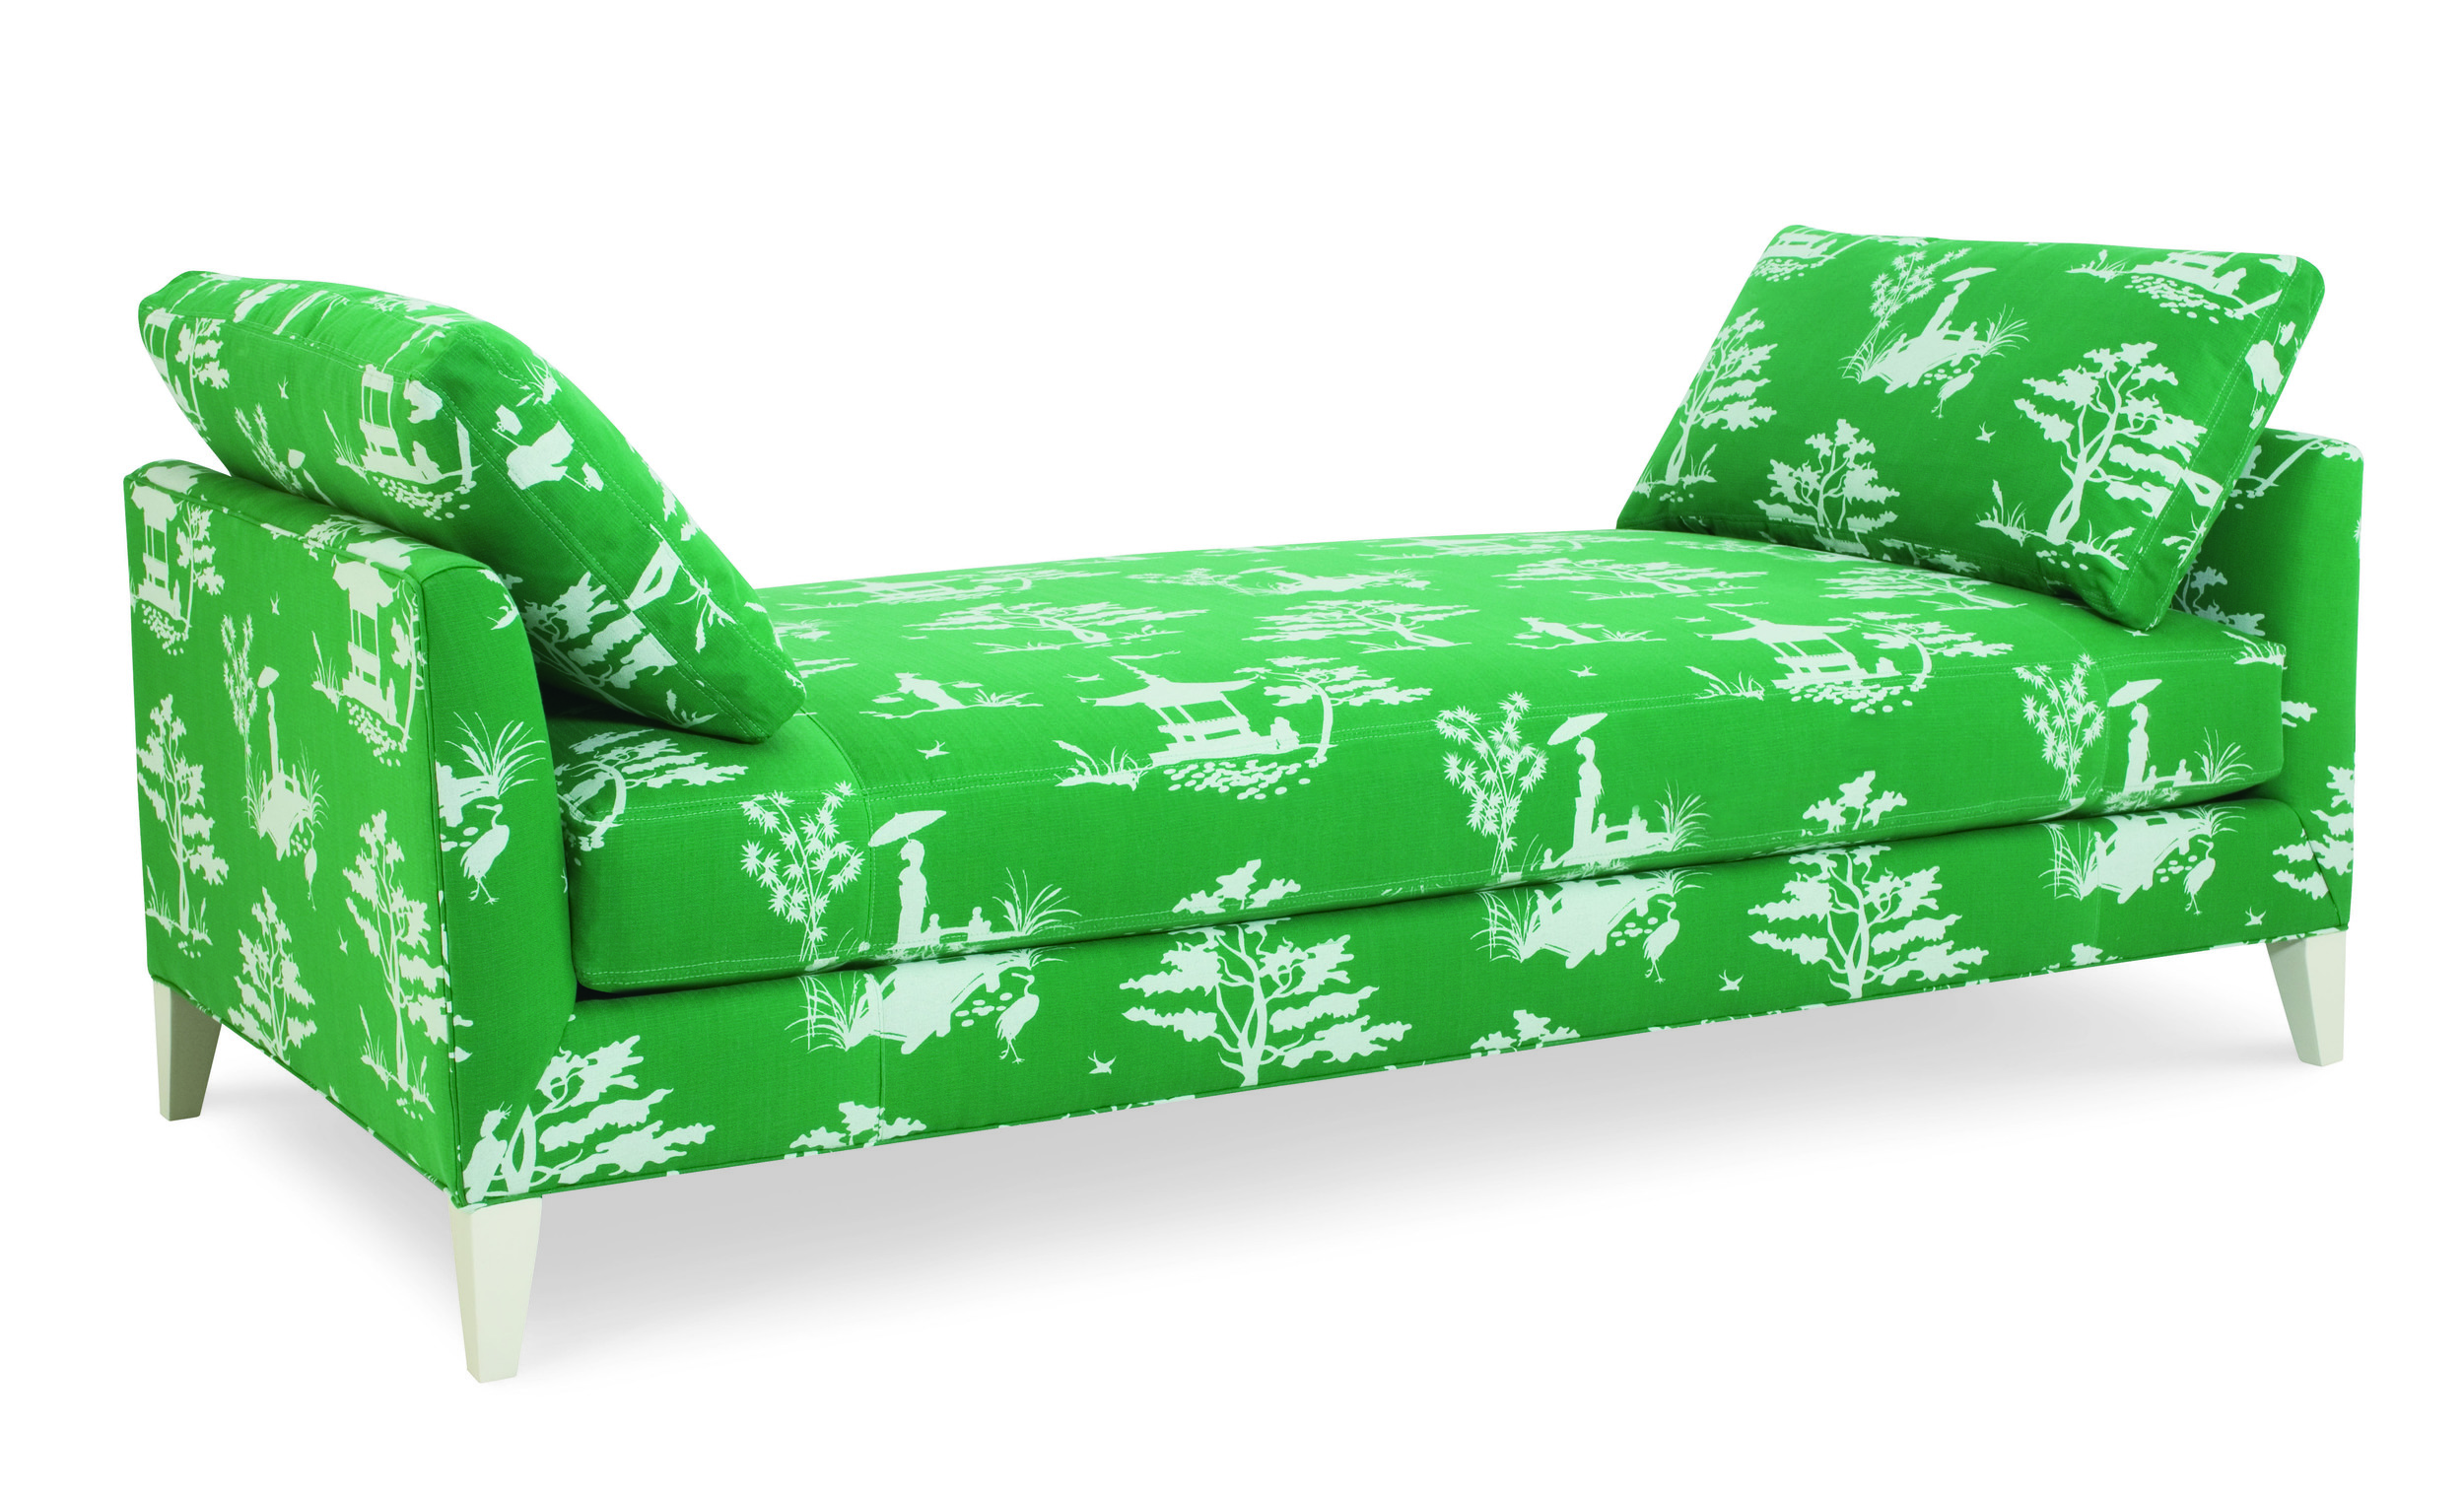 C.R. Laine's Pagoda Daybed in vibrant sping green